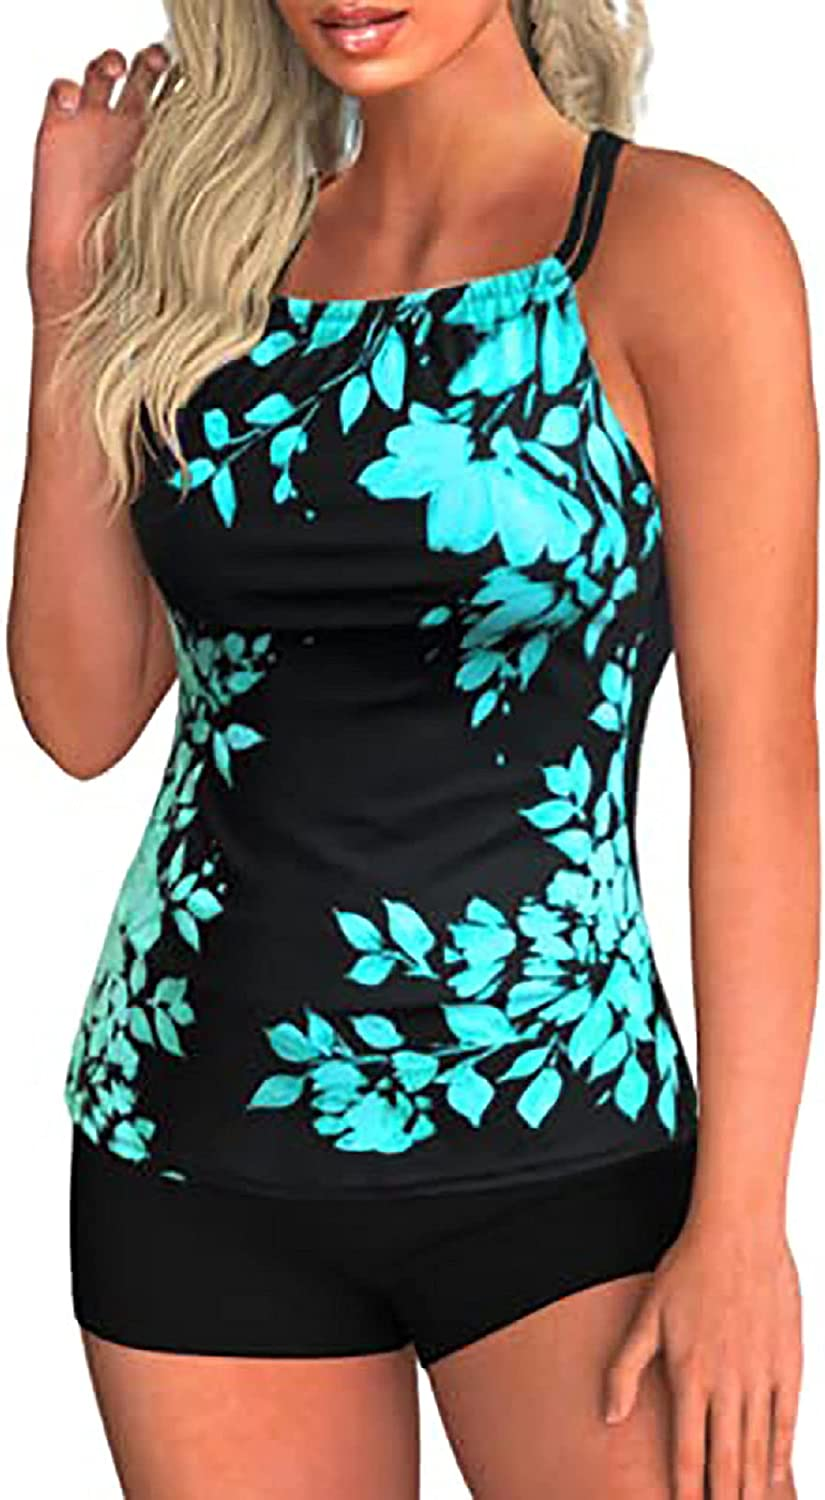 Modest Tankini Swimsuits for Women Two Piece Bathing Suits Leaf Print Sports Tankini Top with Boyshorts